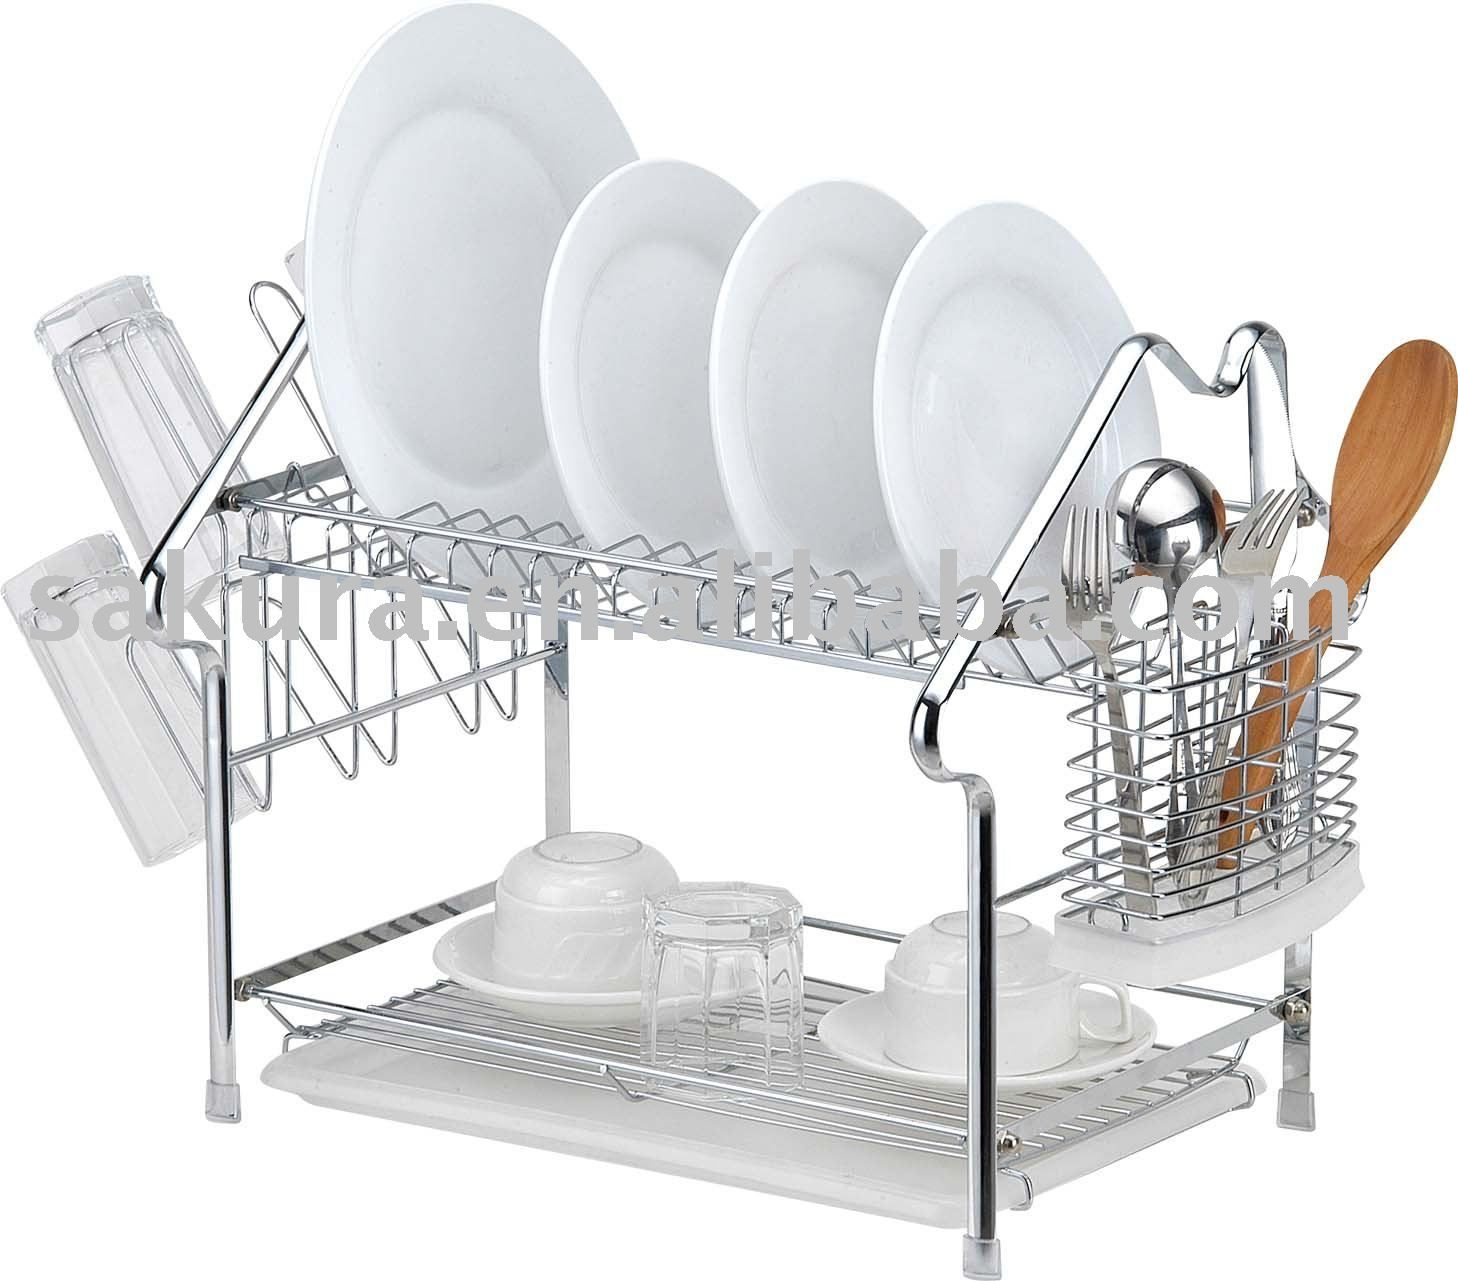 Kitchen Dish Rack House Kitchen Accessory Shape Metal Dish Rack Plate Rack Dish